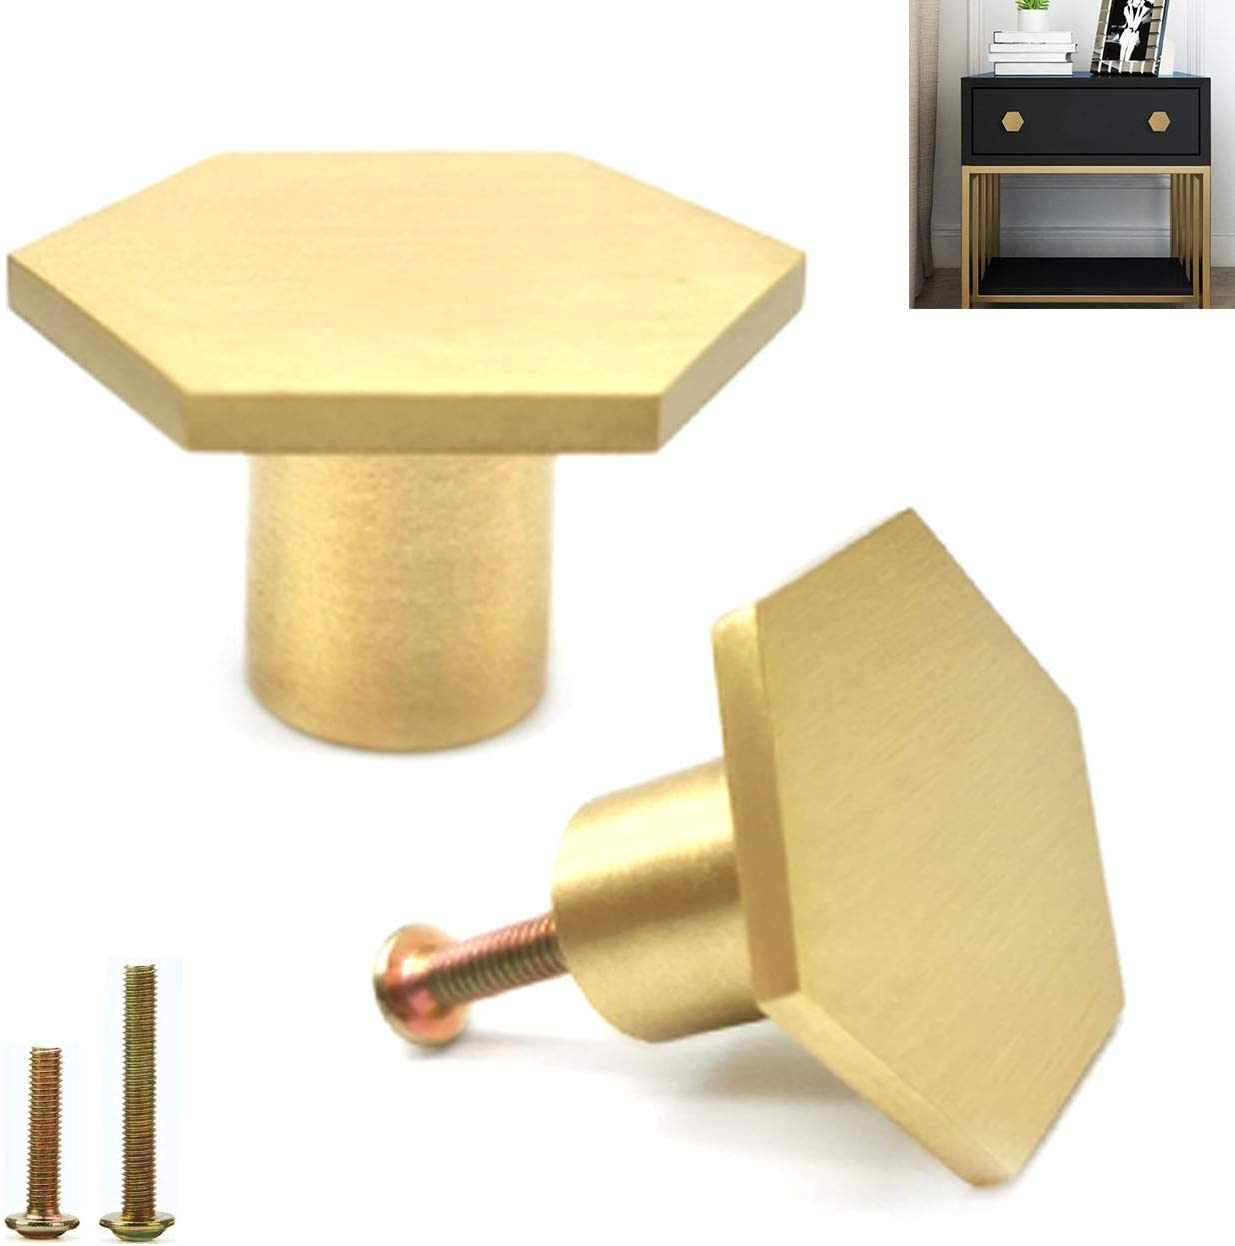 6 Pcs Solid Brass Cabinet Knobs,Gold Pure Copper Brushed Hexagon Decorative Dresser Knobs Drawer Pulls ,for Kitchen Hardware Cupboard Handles 1.34